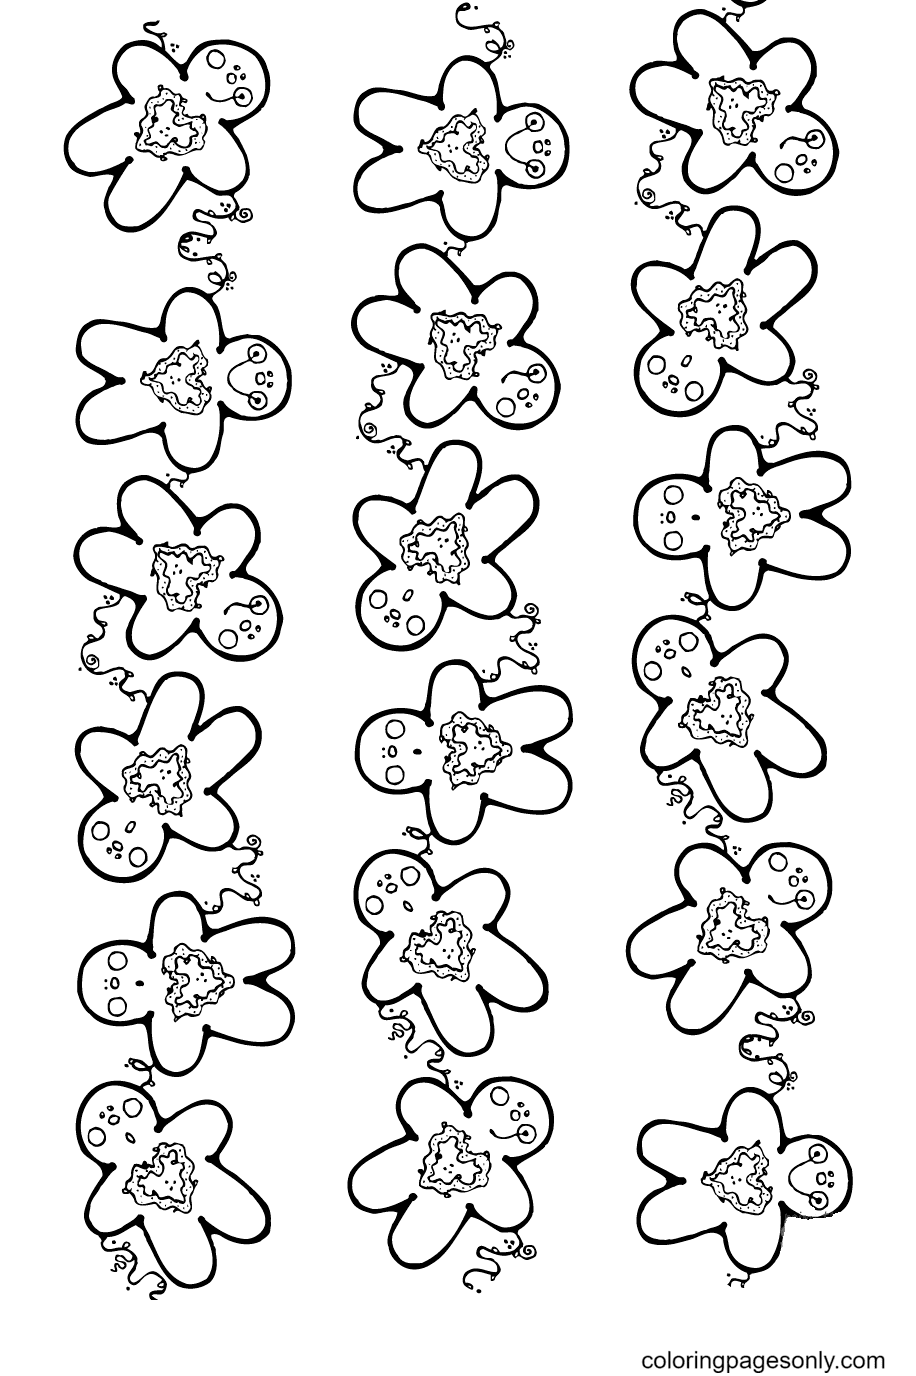 Gingerbread Pattern Coloring Page